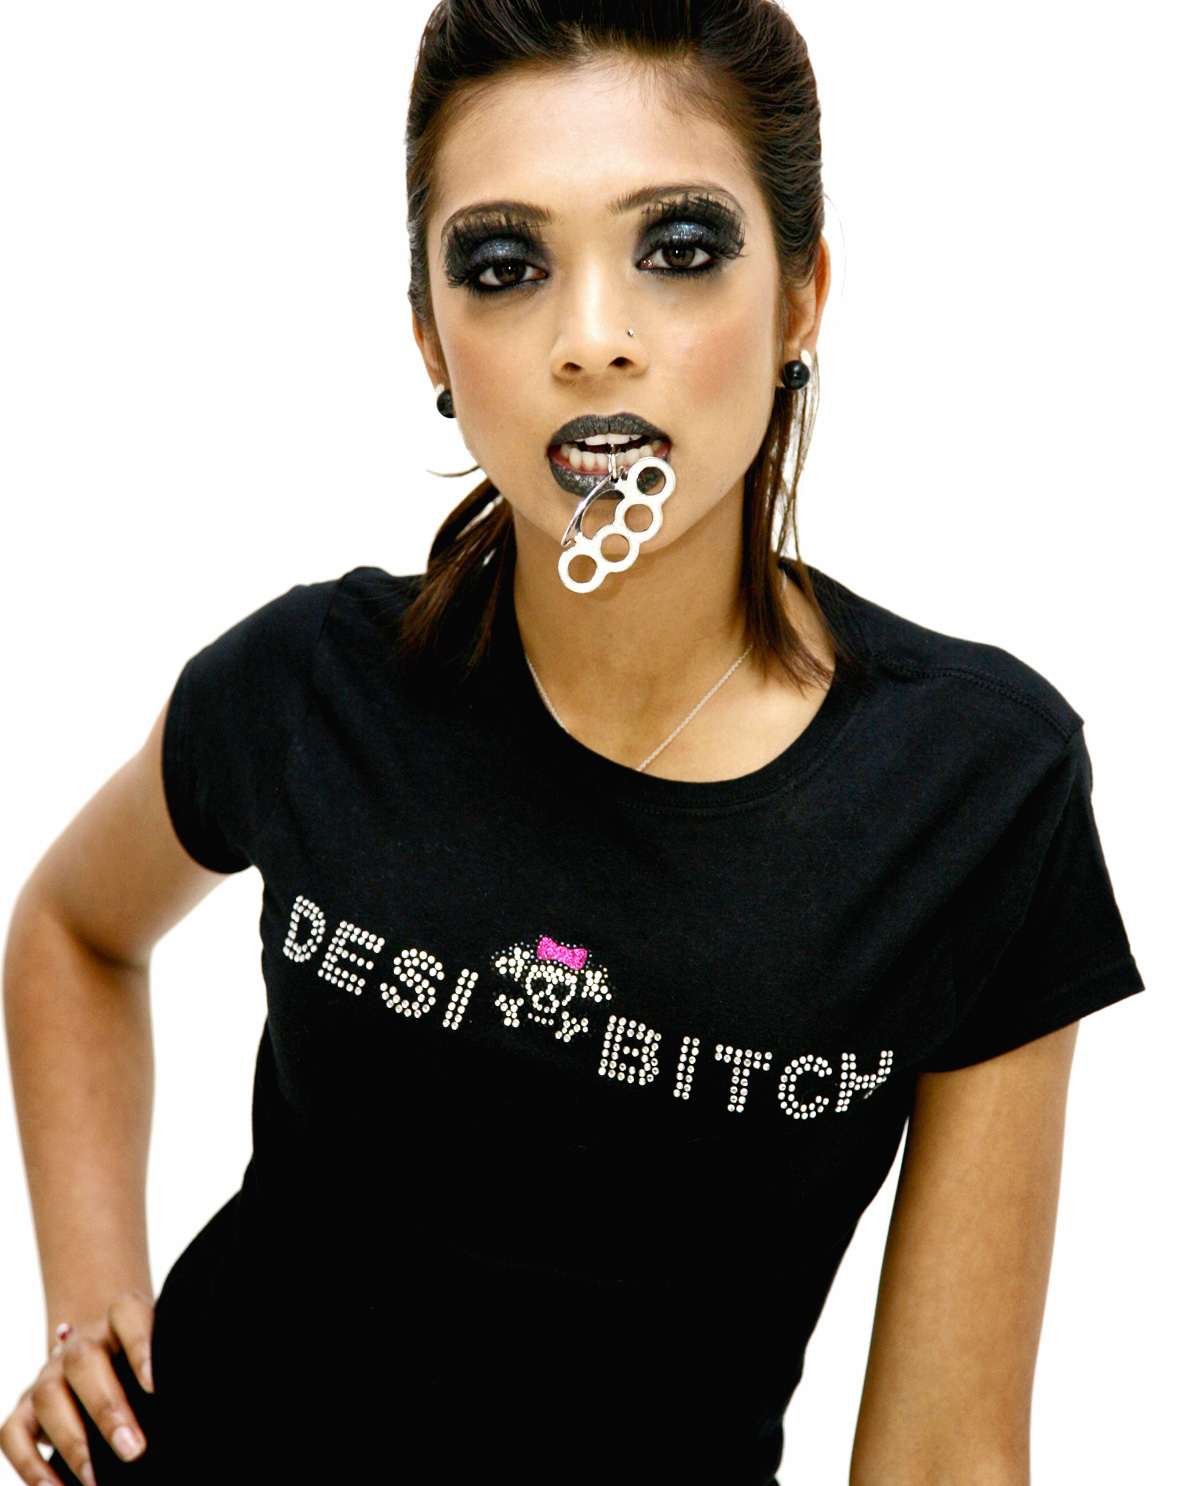 South Asian female model wearing Desi Bitch rhinestone black fitted t.shirt. South Asian Desi Themed Graphic Design t.shirts by Brown Man Clothing Co.